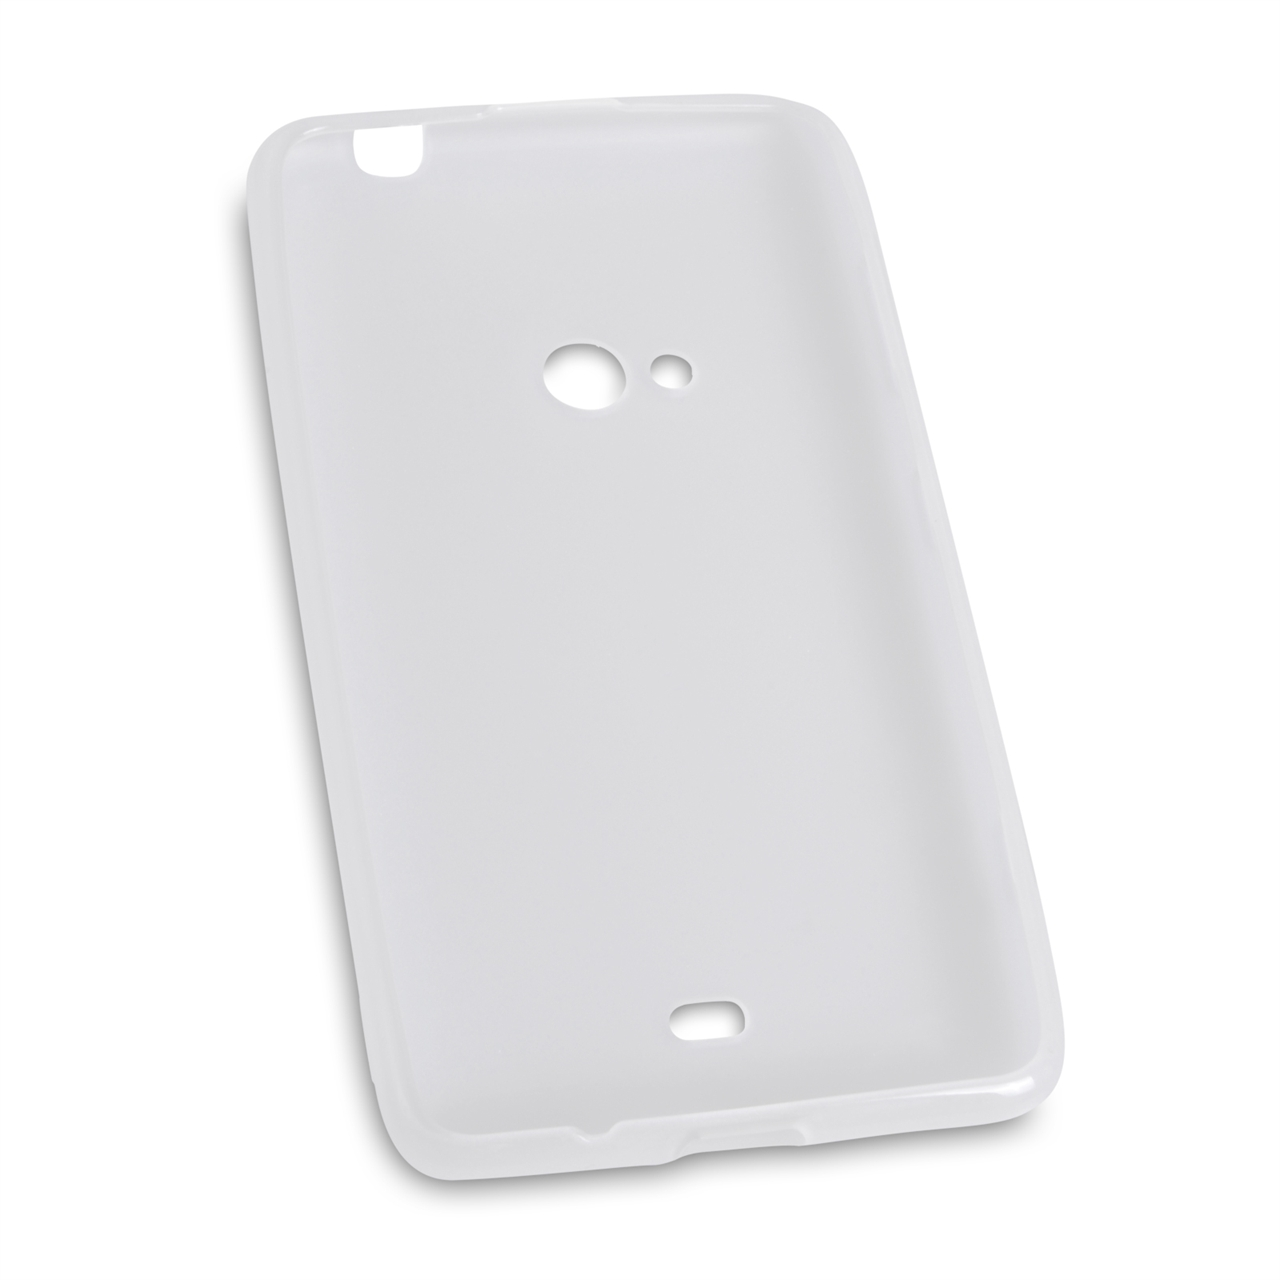 YouSave Accessories Nokia Lumia 625 Gel Case - Clear